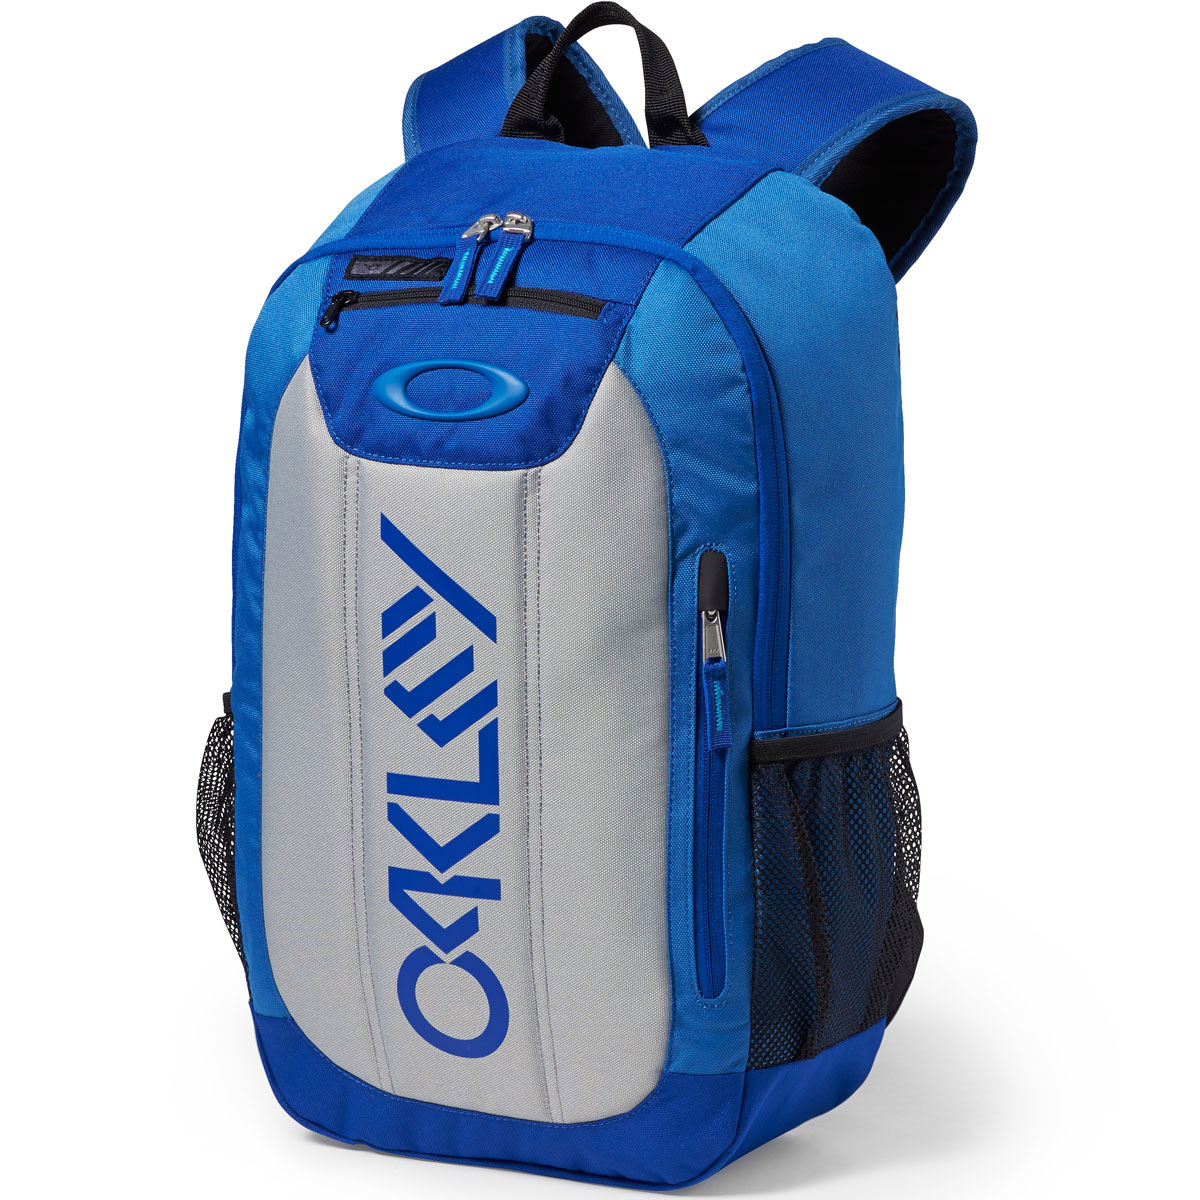 Back To School / School Bags / School Backpacks; Refine Refine & Sort School Backpacks. products. Related categories. Refine Refine & Sort Sort Rank. Recent. Discount (High To Low) Subscribe to Sports Direct. Sign up now to get exclusive product updates and information.